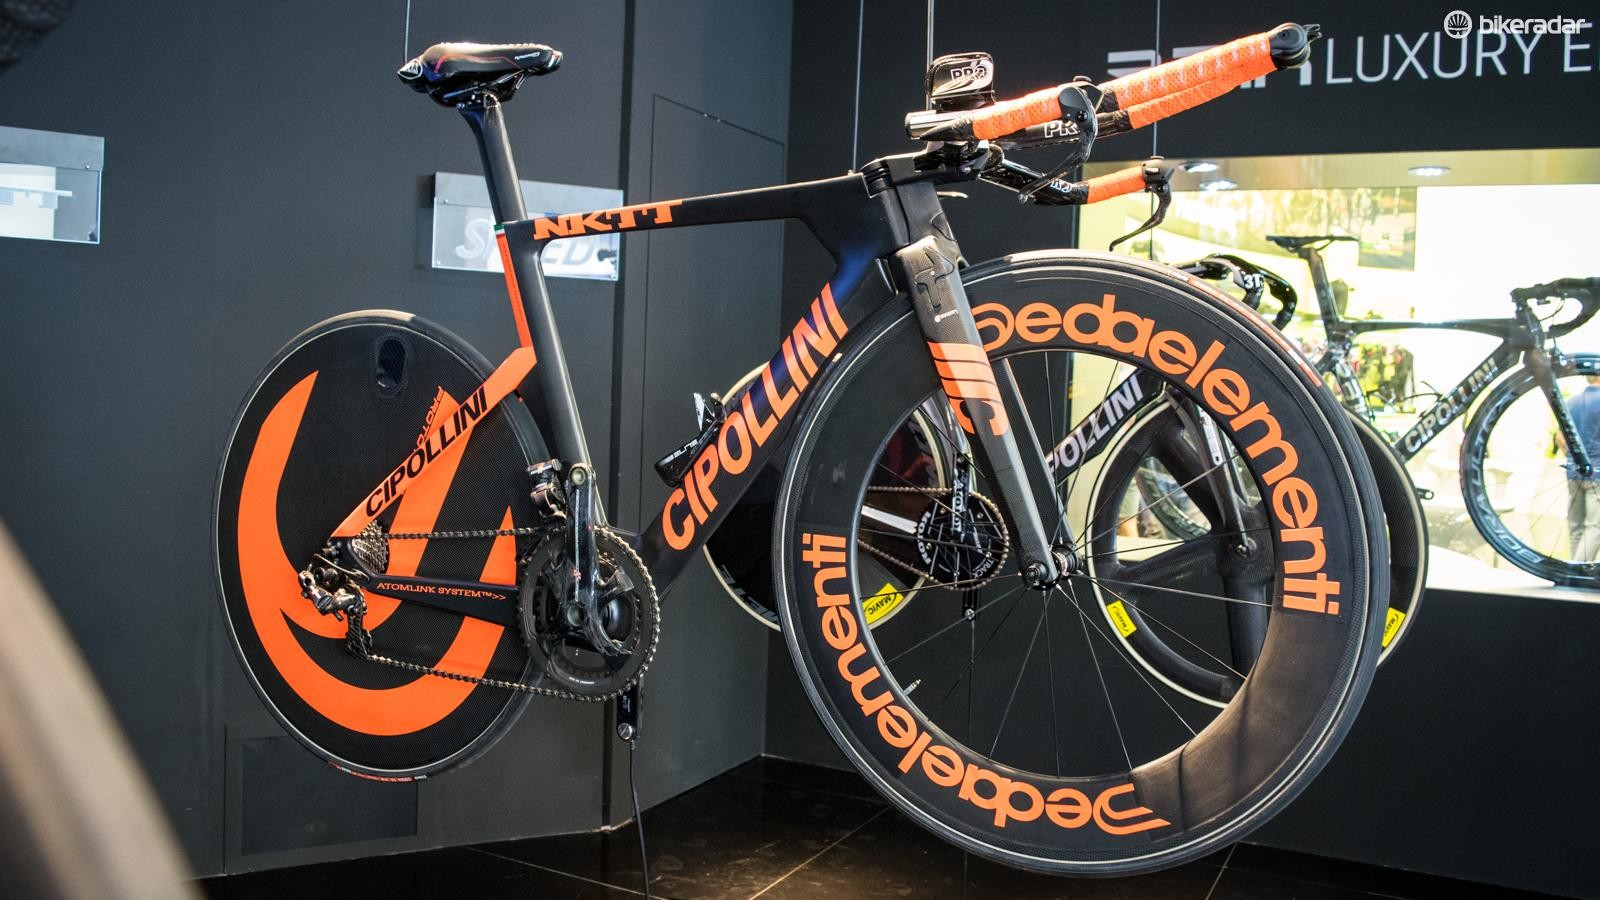 We kick off with Cipollini's stunning NKTT – it's a beauty worthy of the extroverted ex-pro